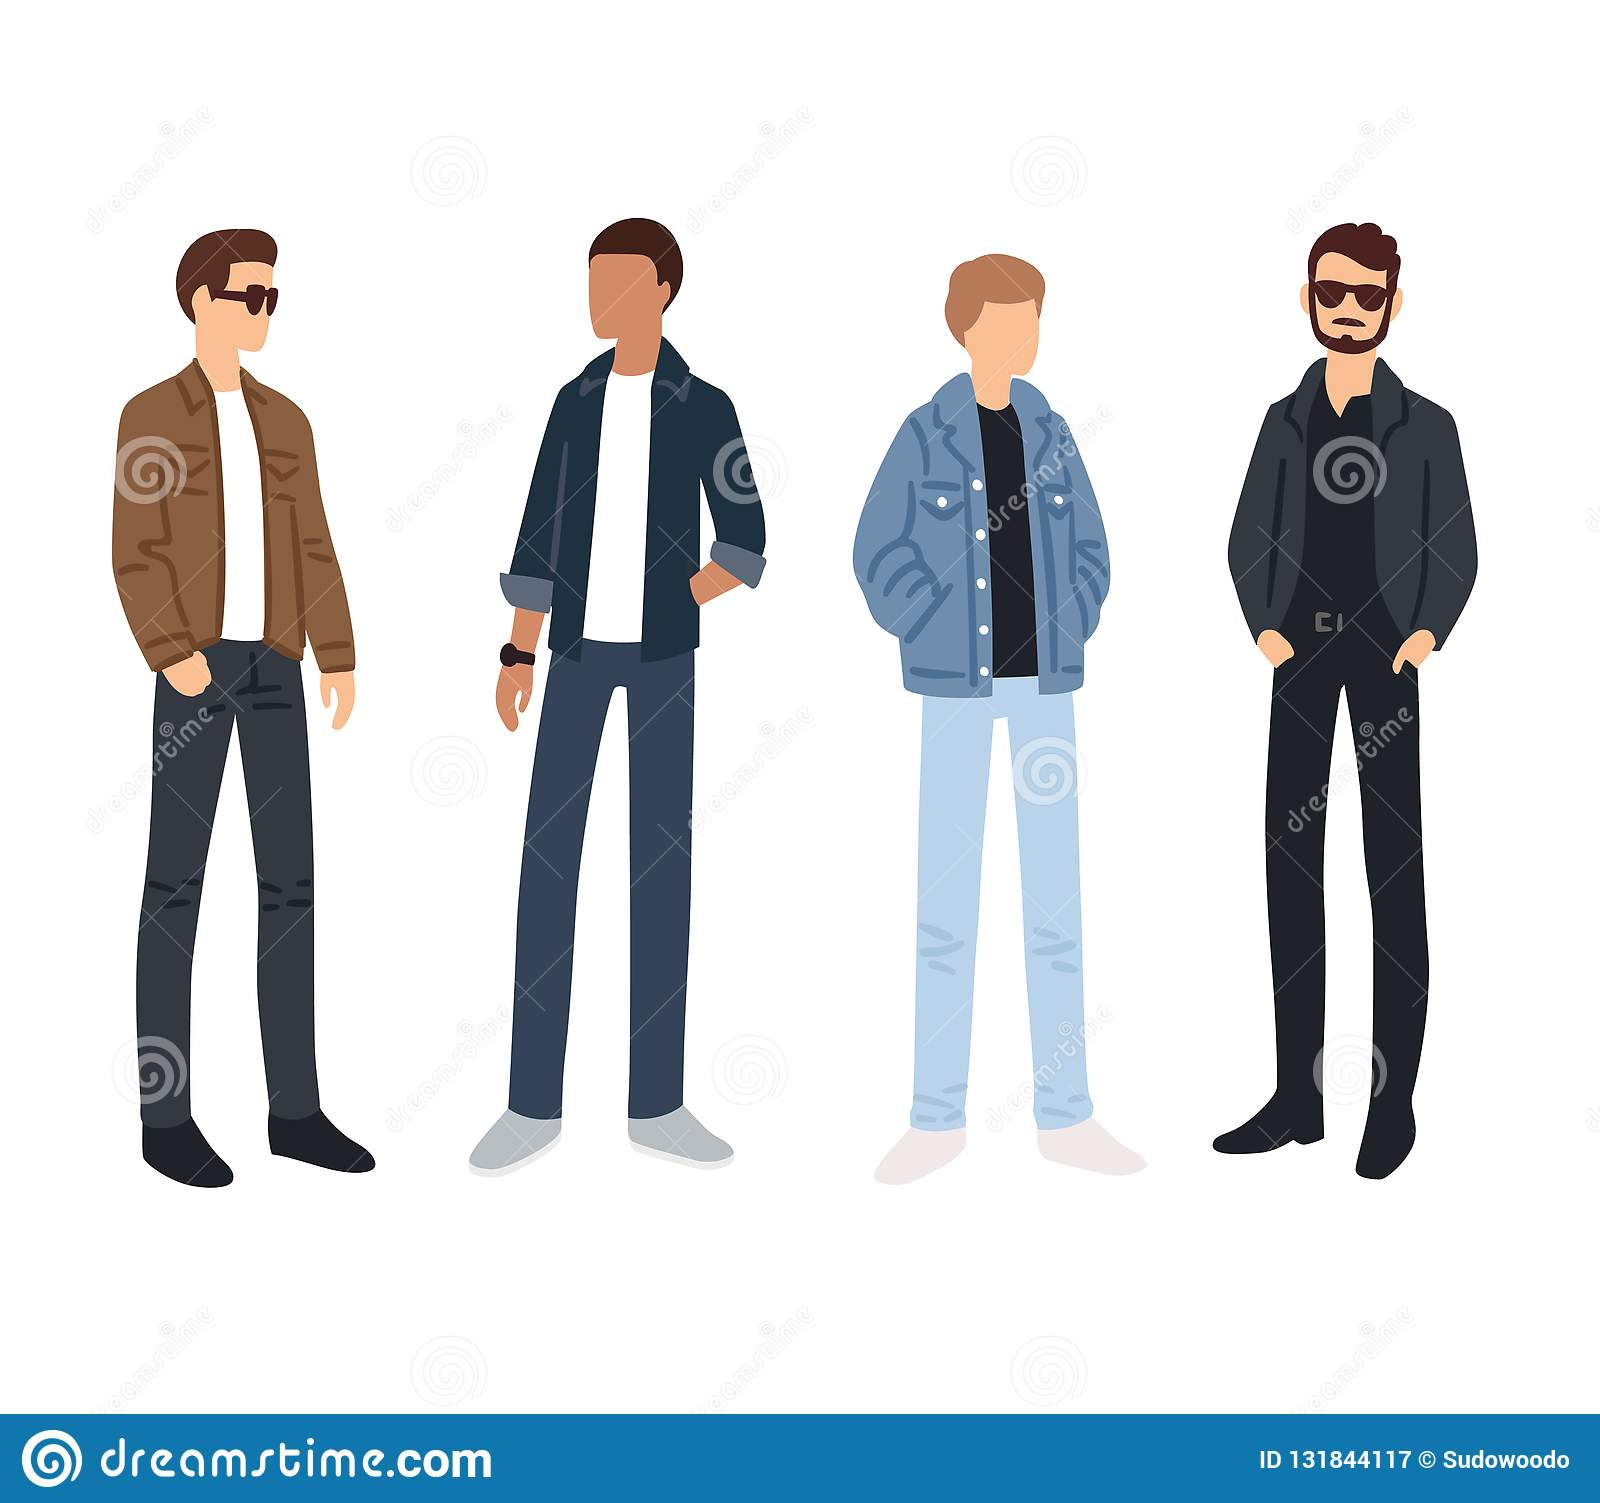 137e49b9 Male fashion models color sketches. Young people in casual street style  clothes. Isolated vector illustration